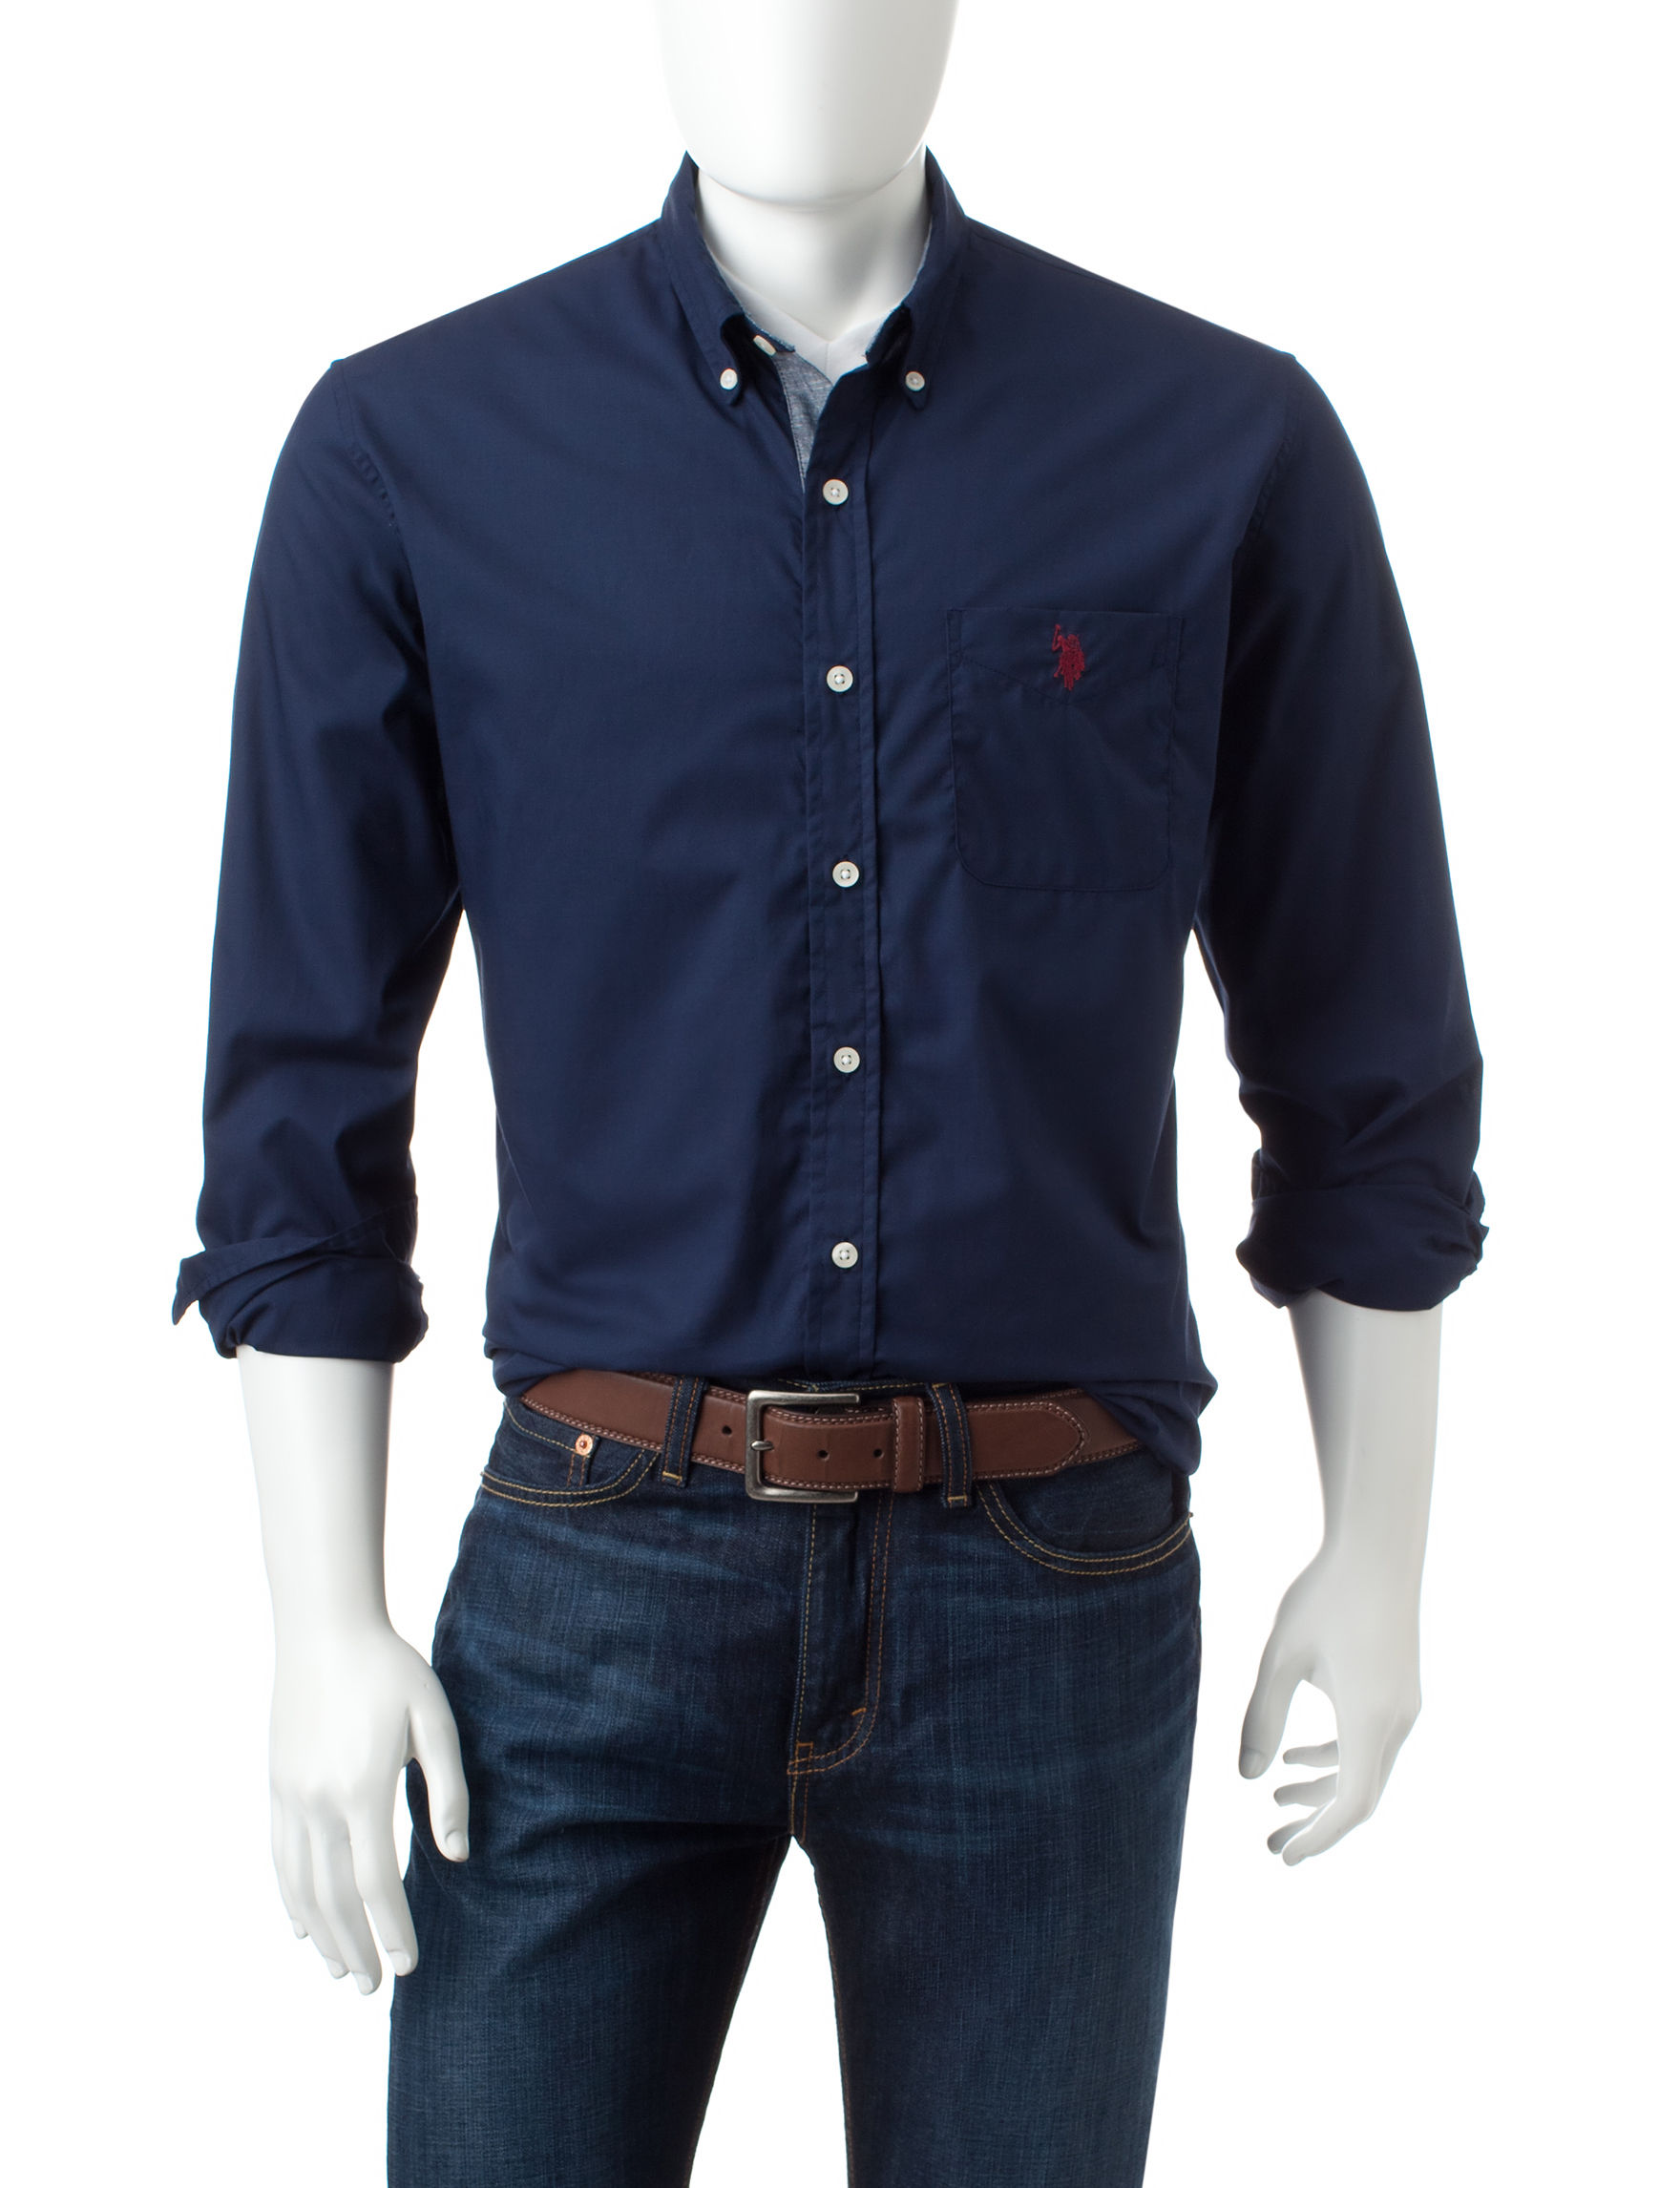 U.S. Polo Assn. Navy Casual Button Down Shirts